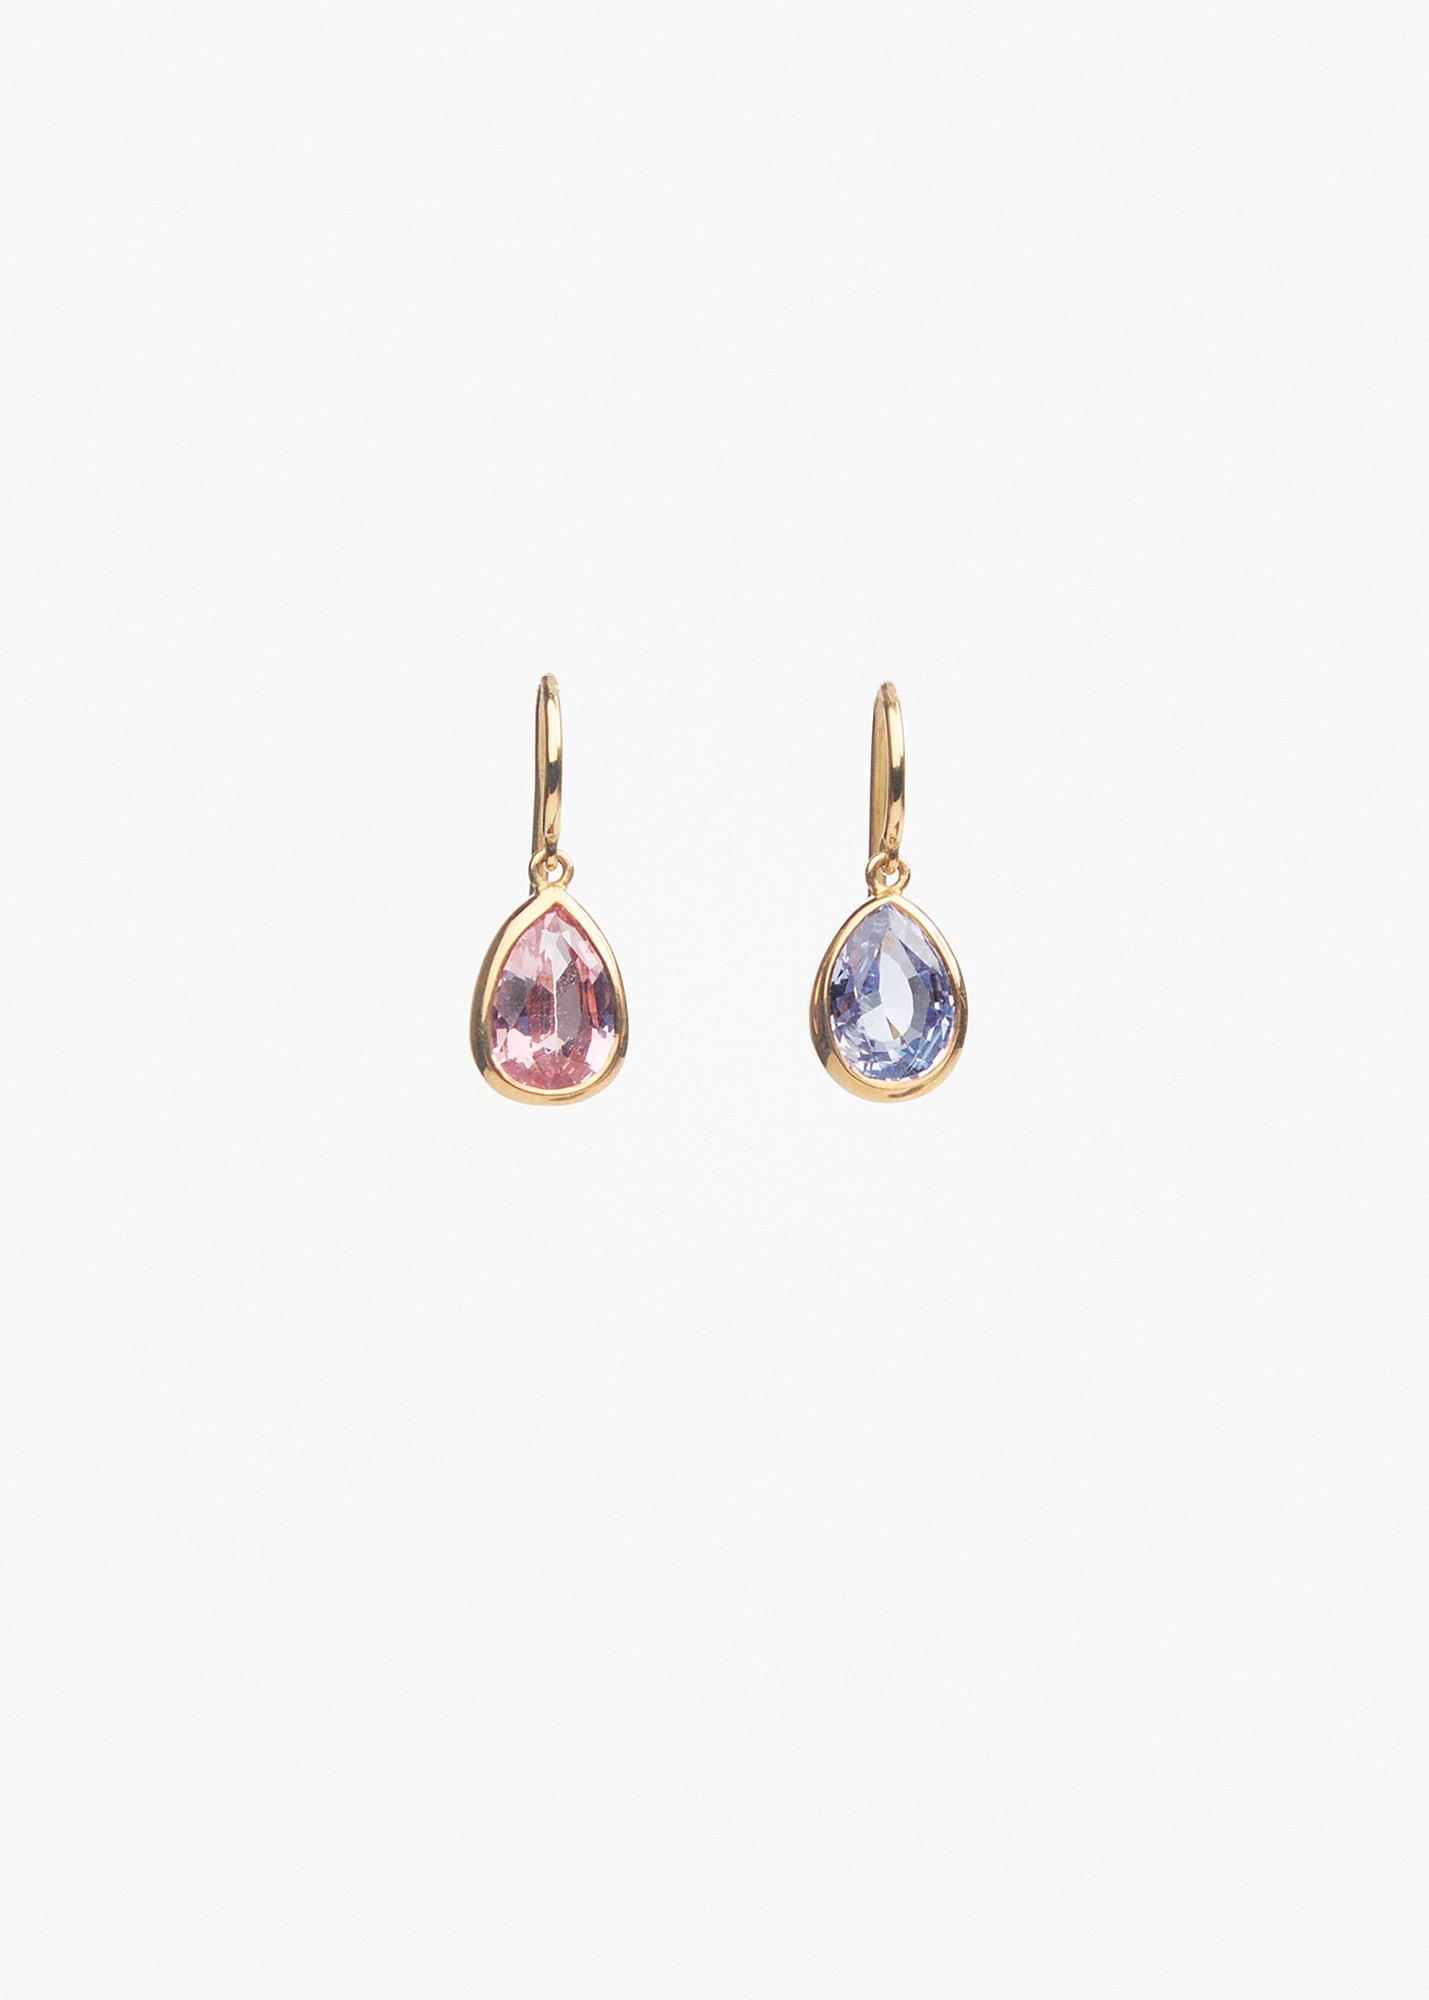 William Welstead Pink and Blue Spinel Earrings